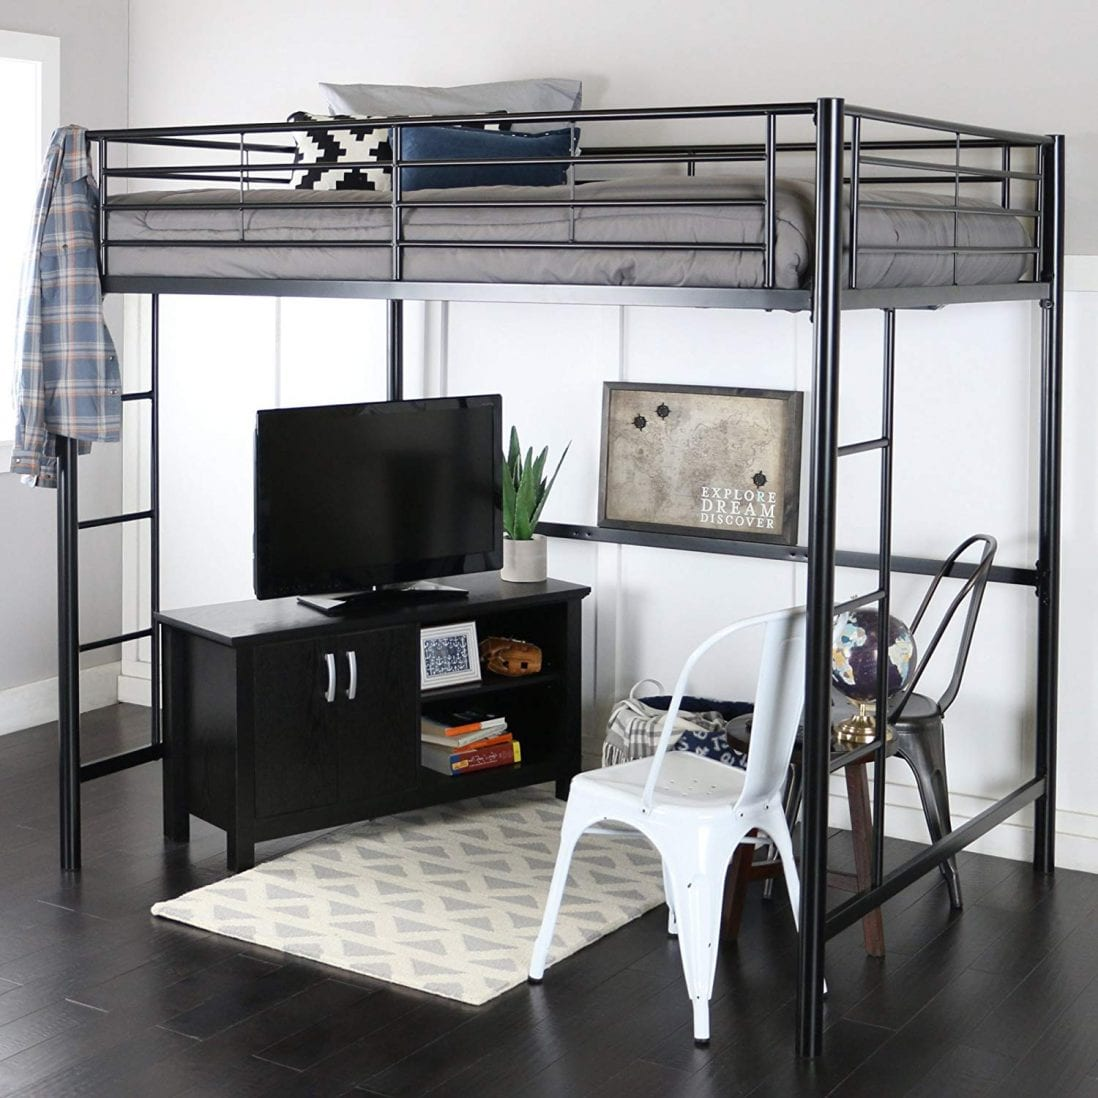 WE Furniture Best Bunk Bed for Dorm Rooms review and buying guide by www.dailysleep.org